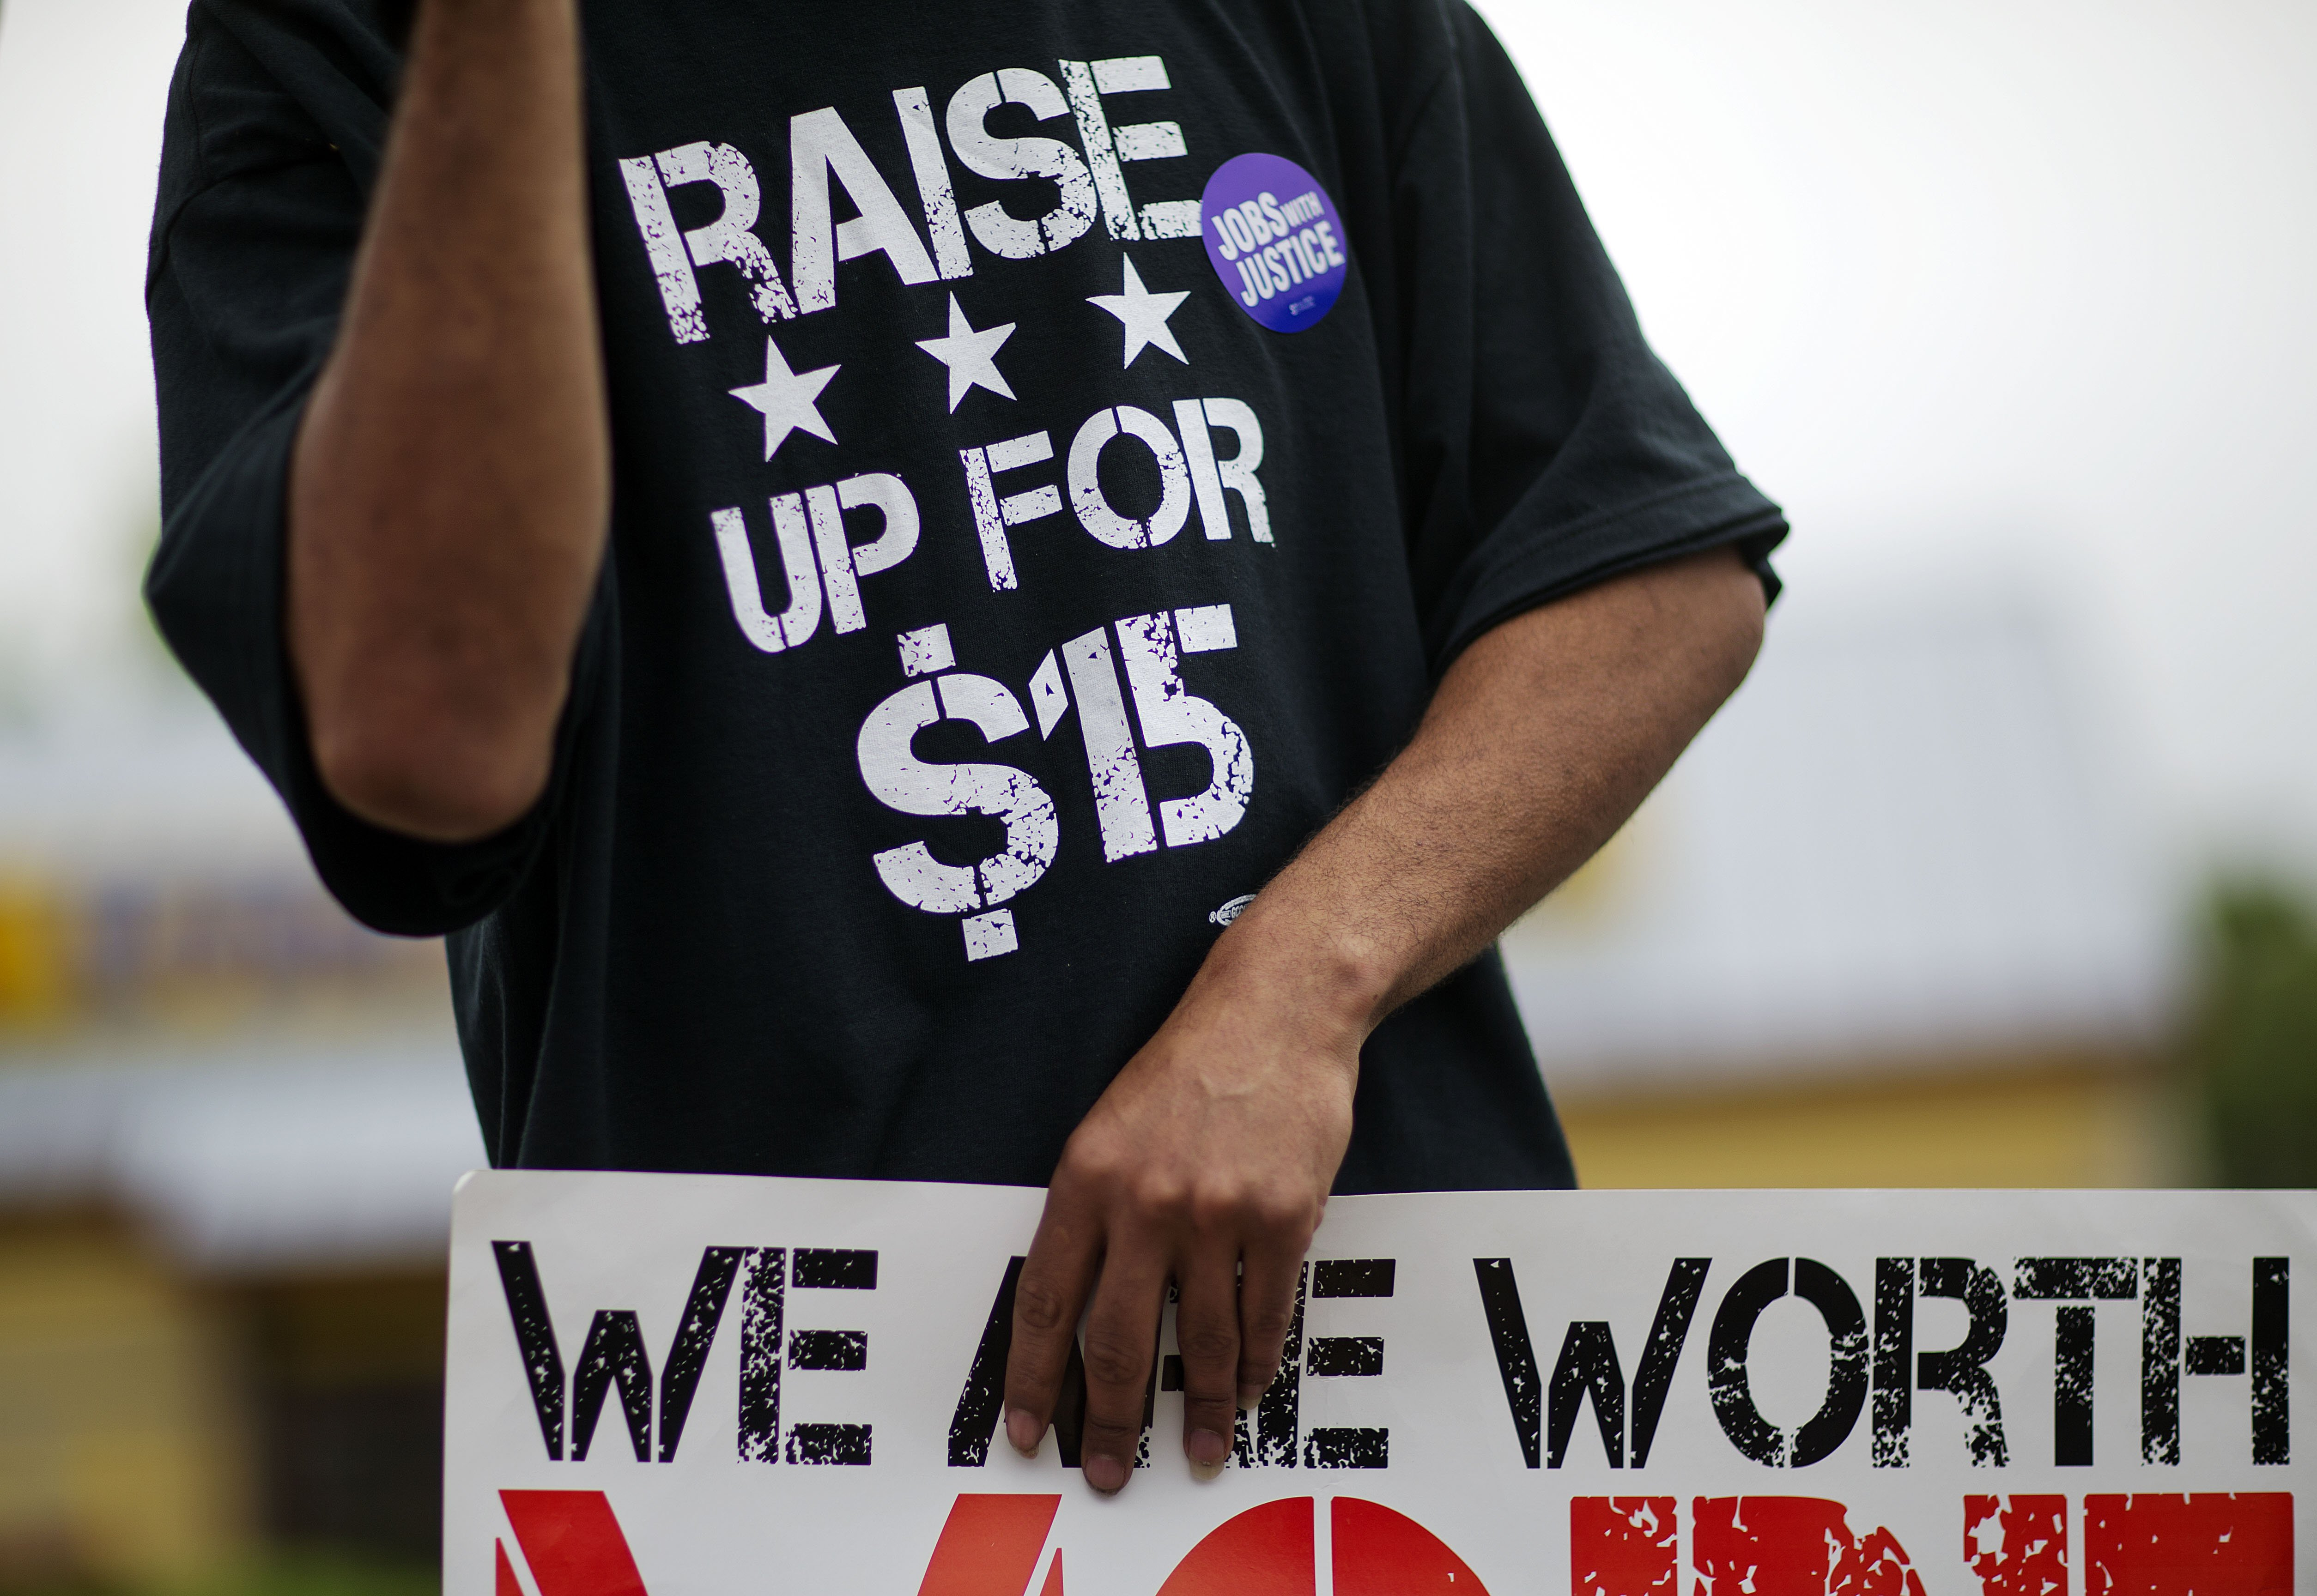 <b>Atlanta:</b> Long John Silver's employee Antwon Brown, 31, wears a shirt advocating for higher wages during a protest outside a Long John Silver's restaurant on May 15, 2014.